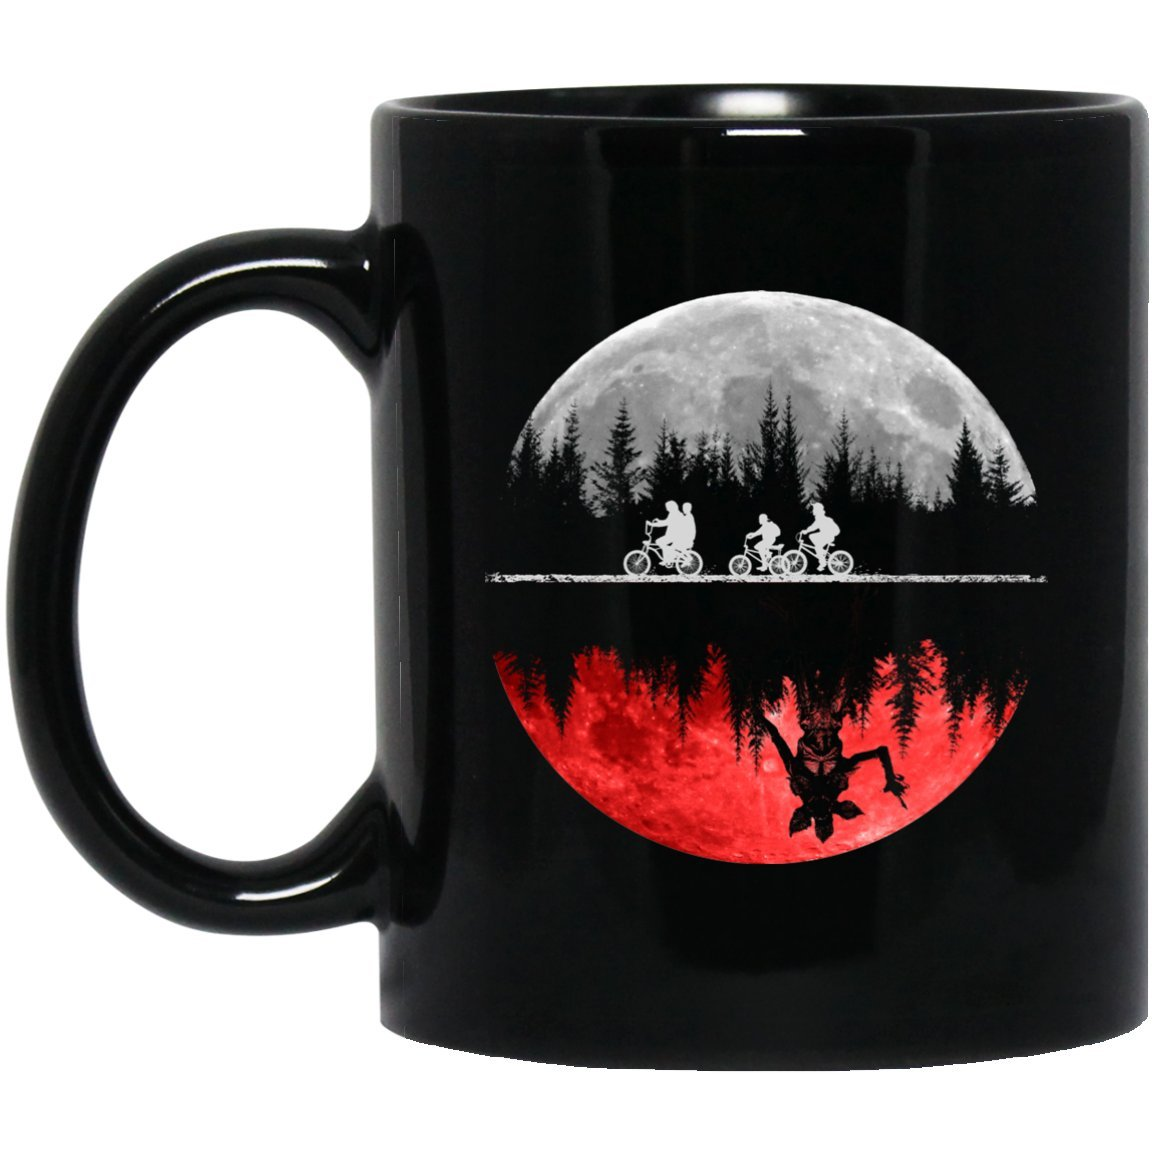 Hawkins The Upside Down 1983 Stranger Things Inspired Tea Mugs & Coffee Cups 11oz